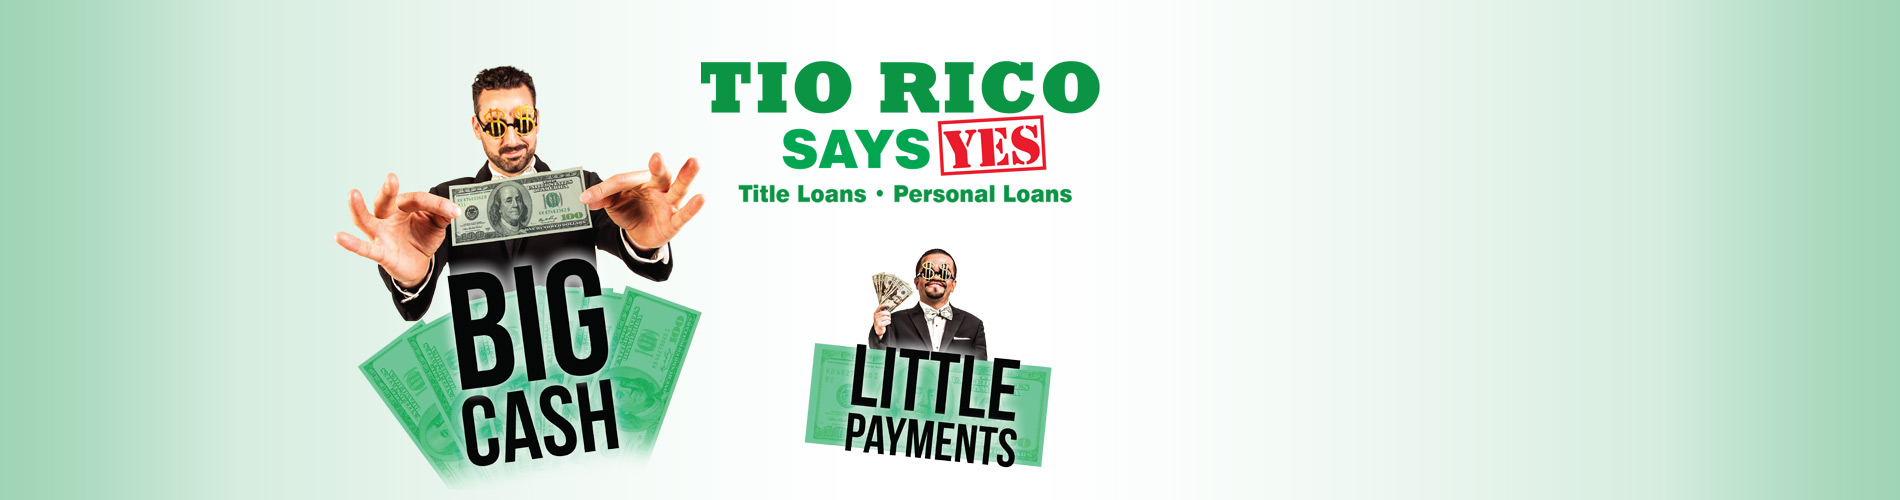 Big cash little payments Title loans and personal loans